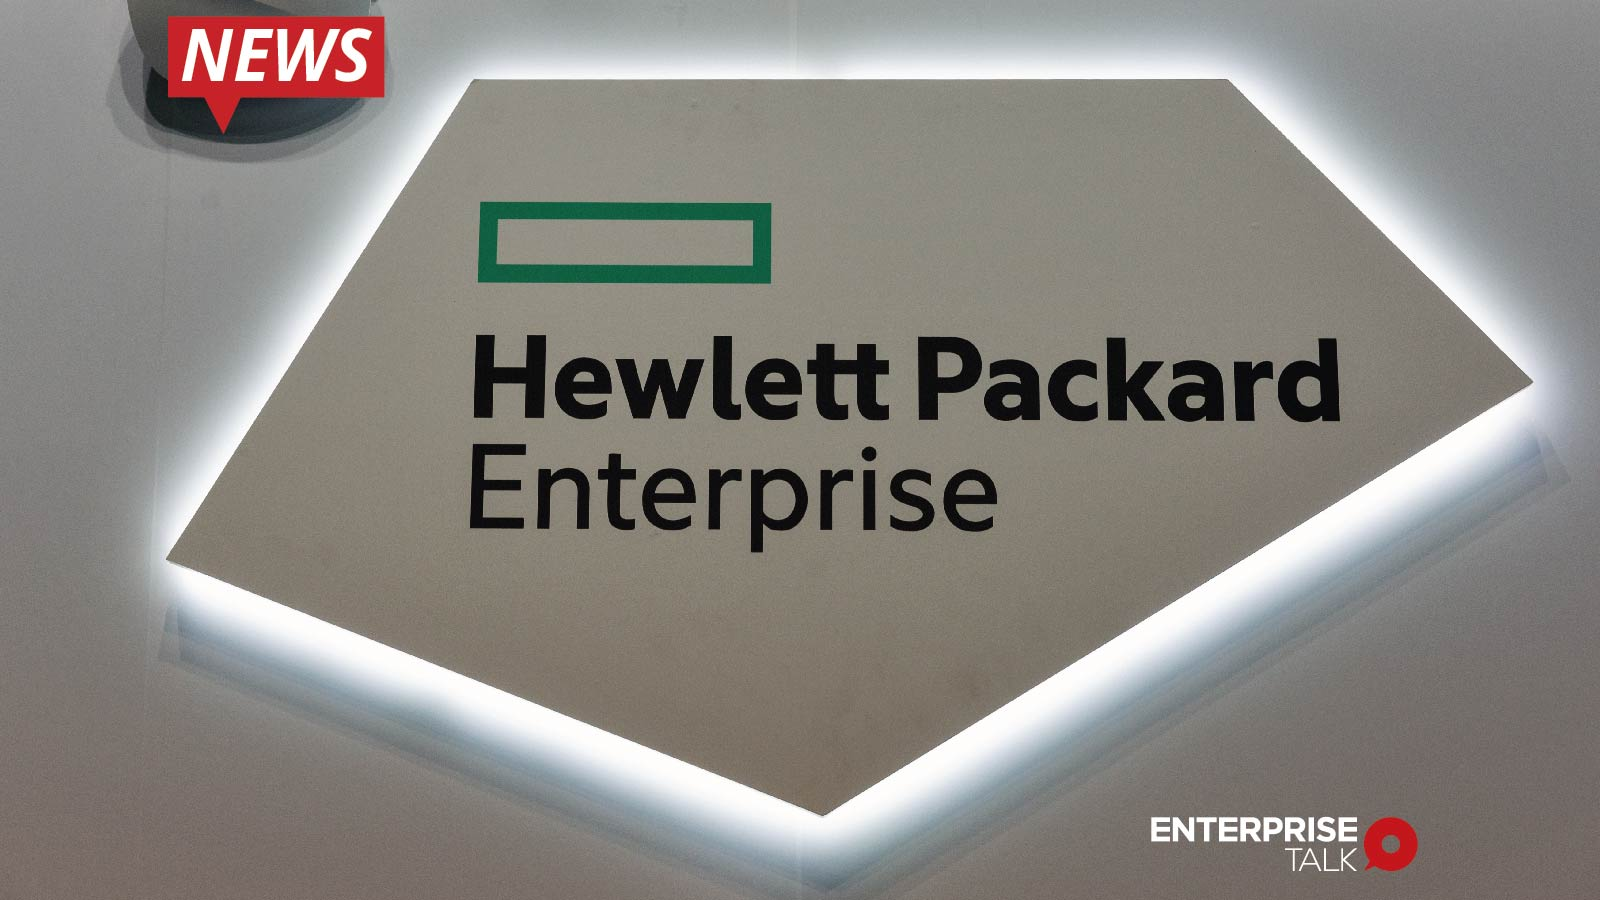 Scality Delivers 62% YoY Revenue Growth and Strengthens Partnerships With New Veeam 10 Qualification _ Expansion With Hewlett Packard Enterprise